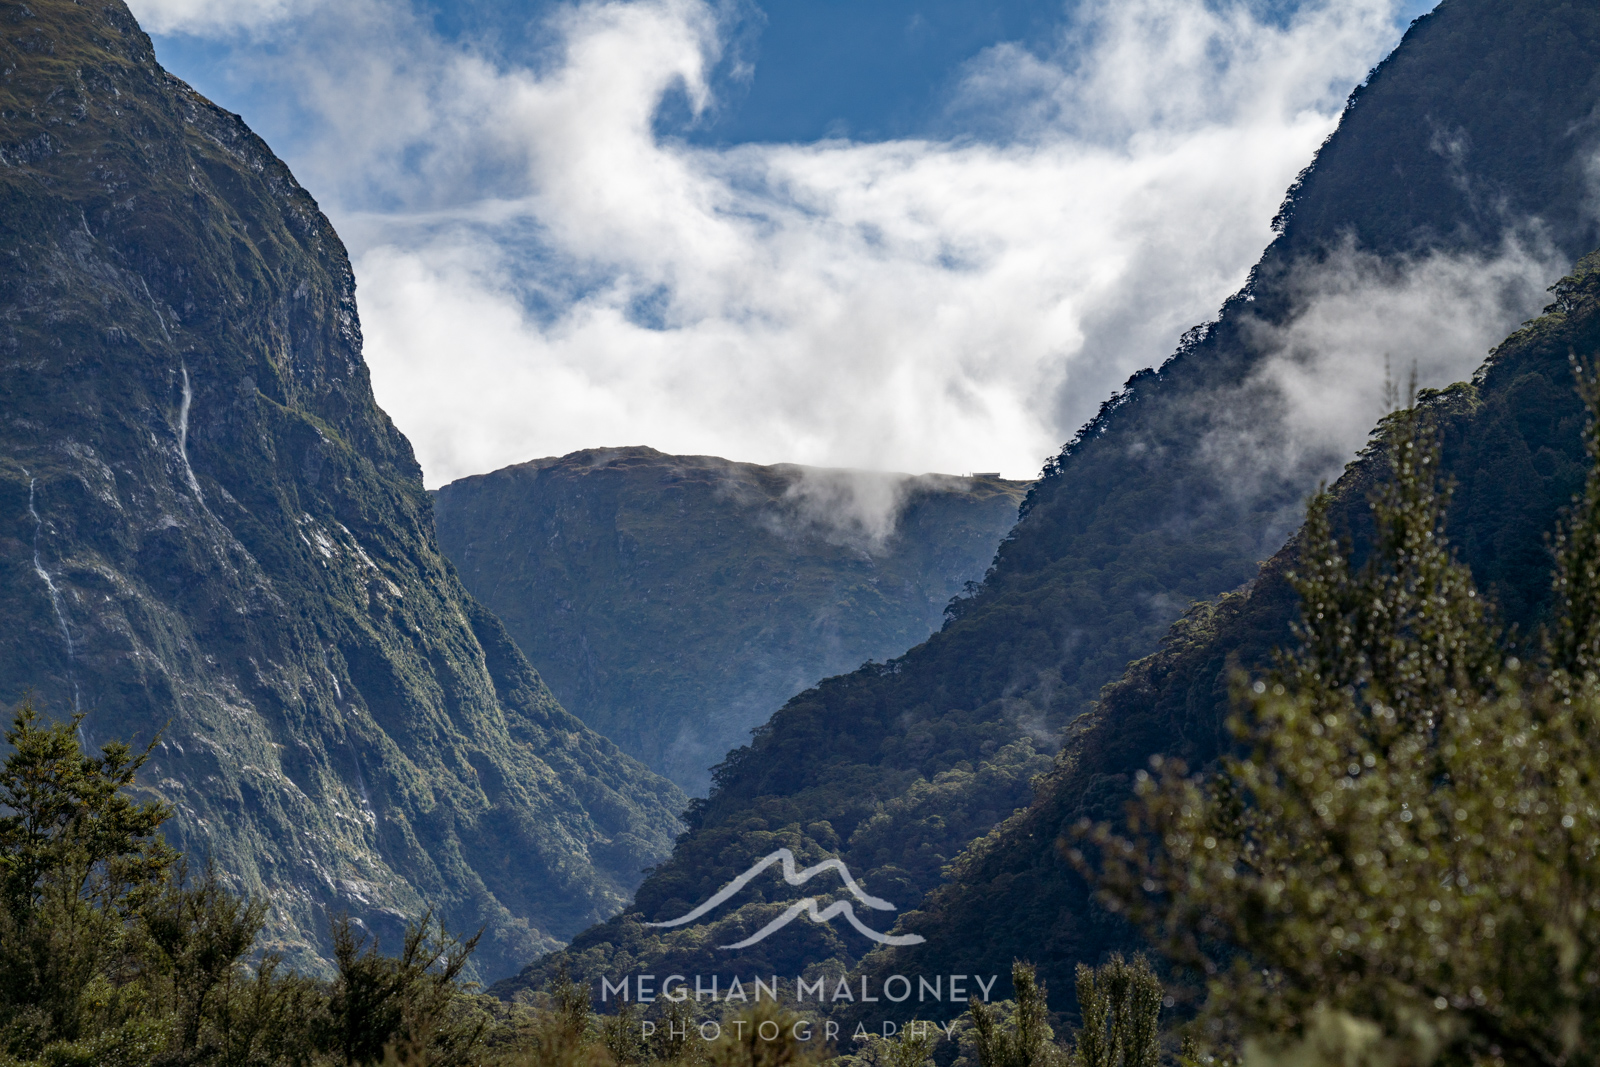 mackinnon pass view clinton valley milford track